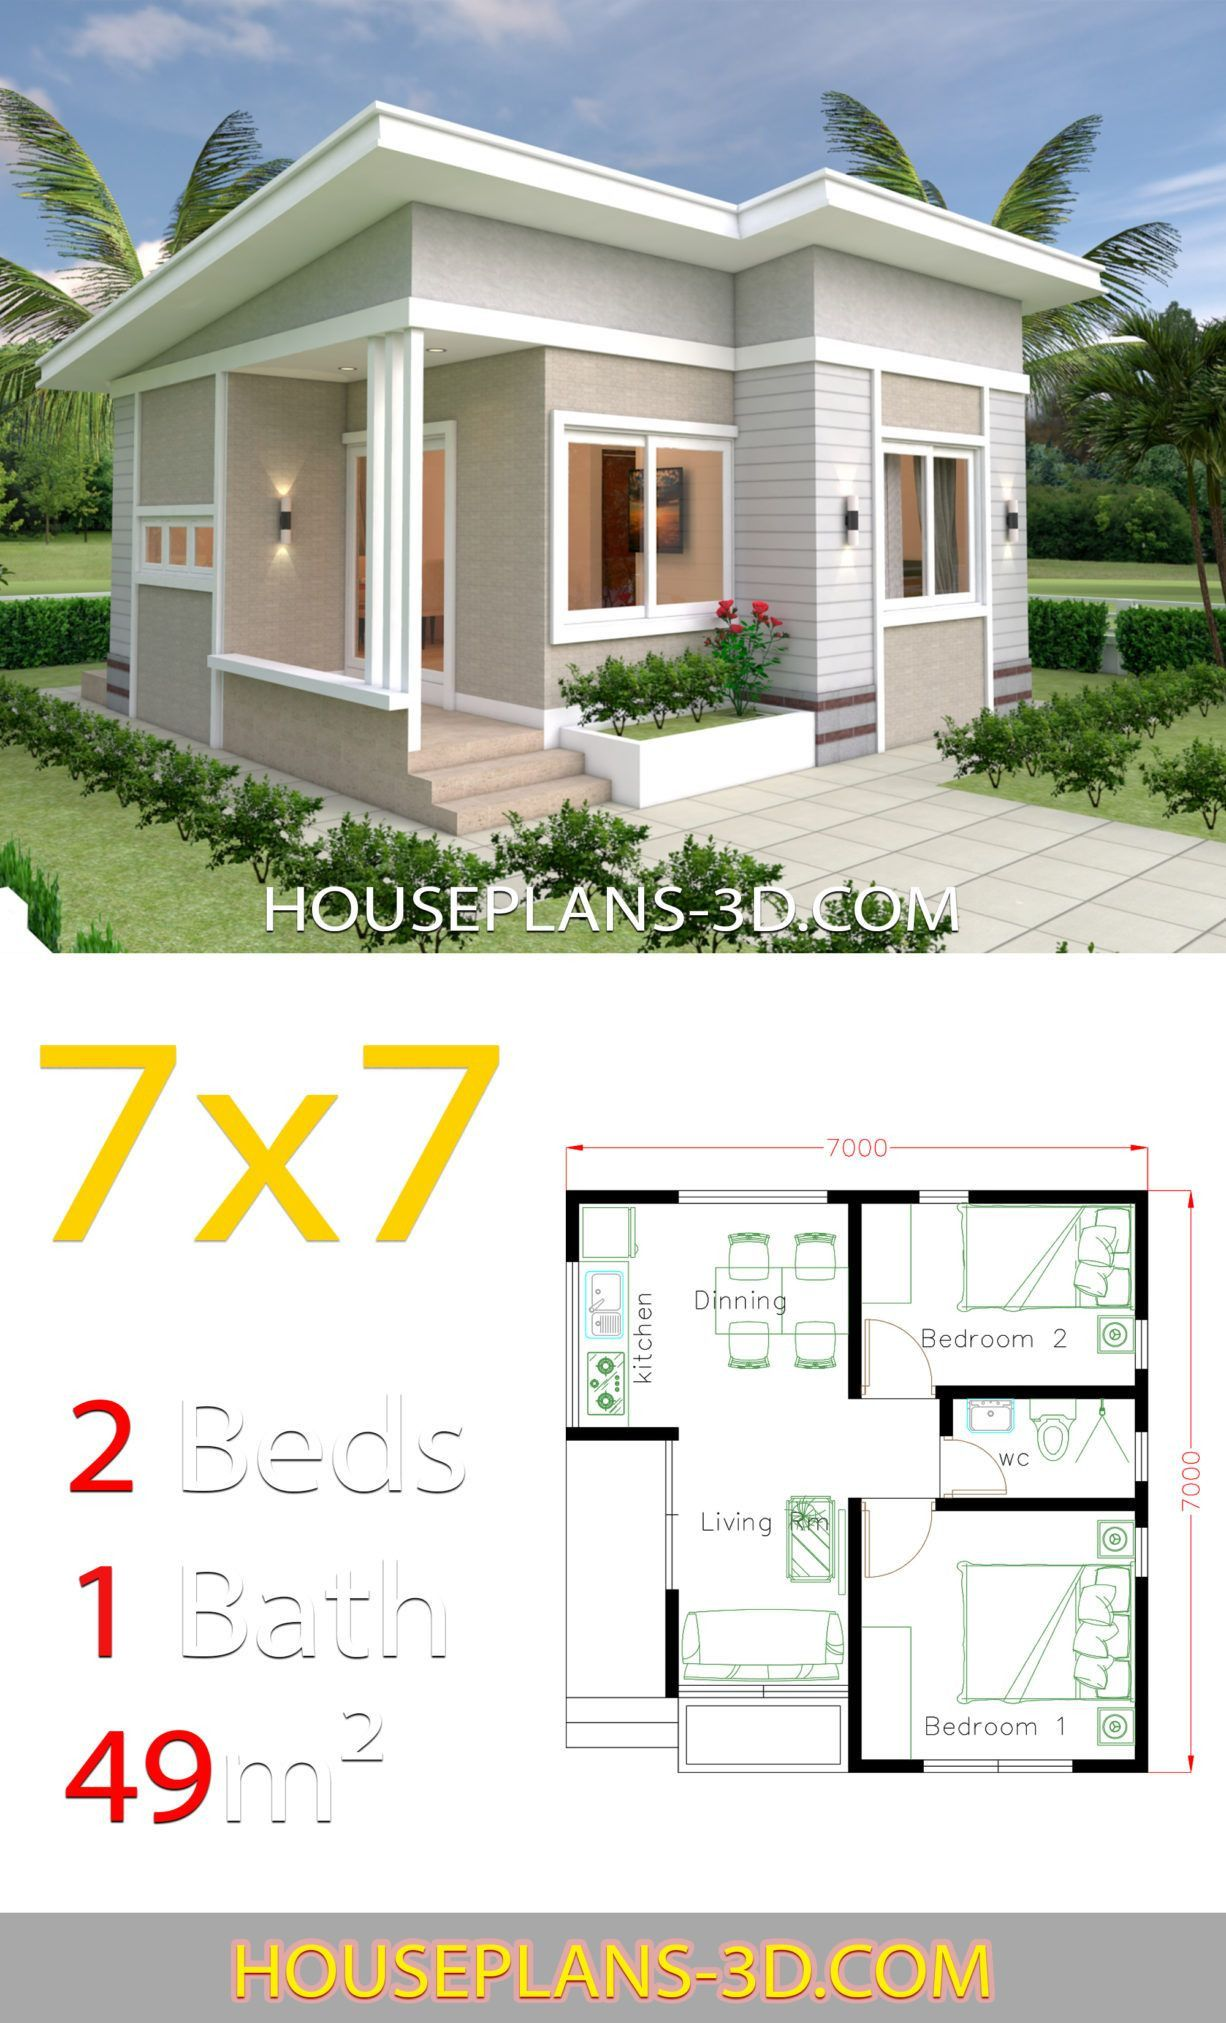 Inspirational Tiny House Plans 2 Bed Small House Design 7x7 With 2 Bedrooms In 2020 2 Bedroom House Design Small House Design Plans House Design Pictures